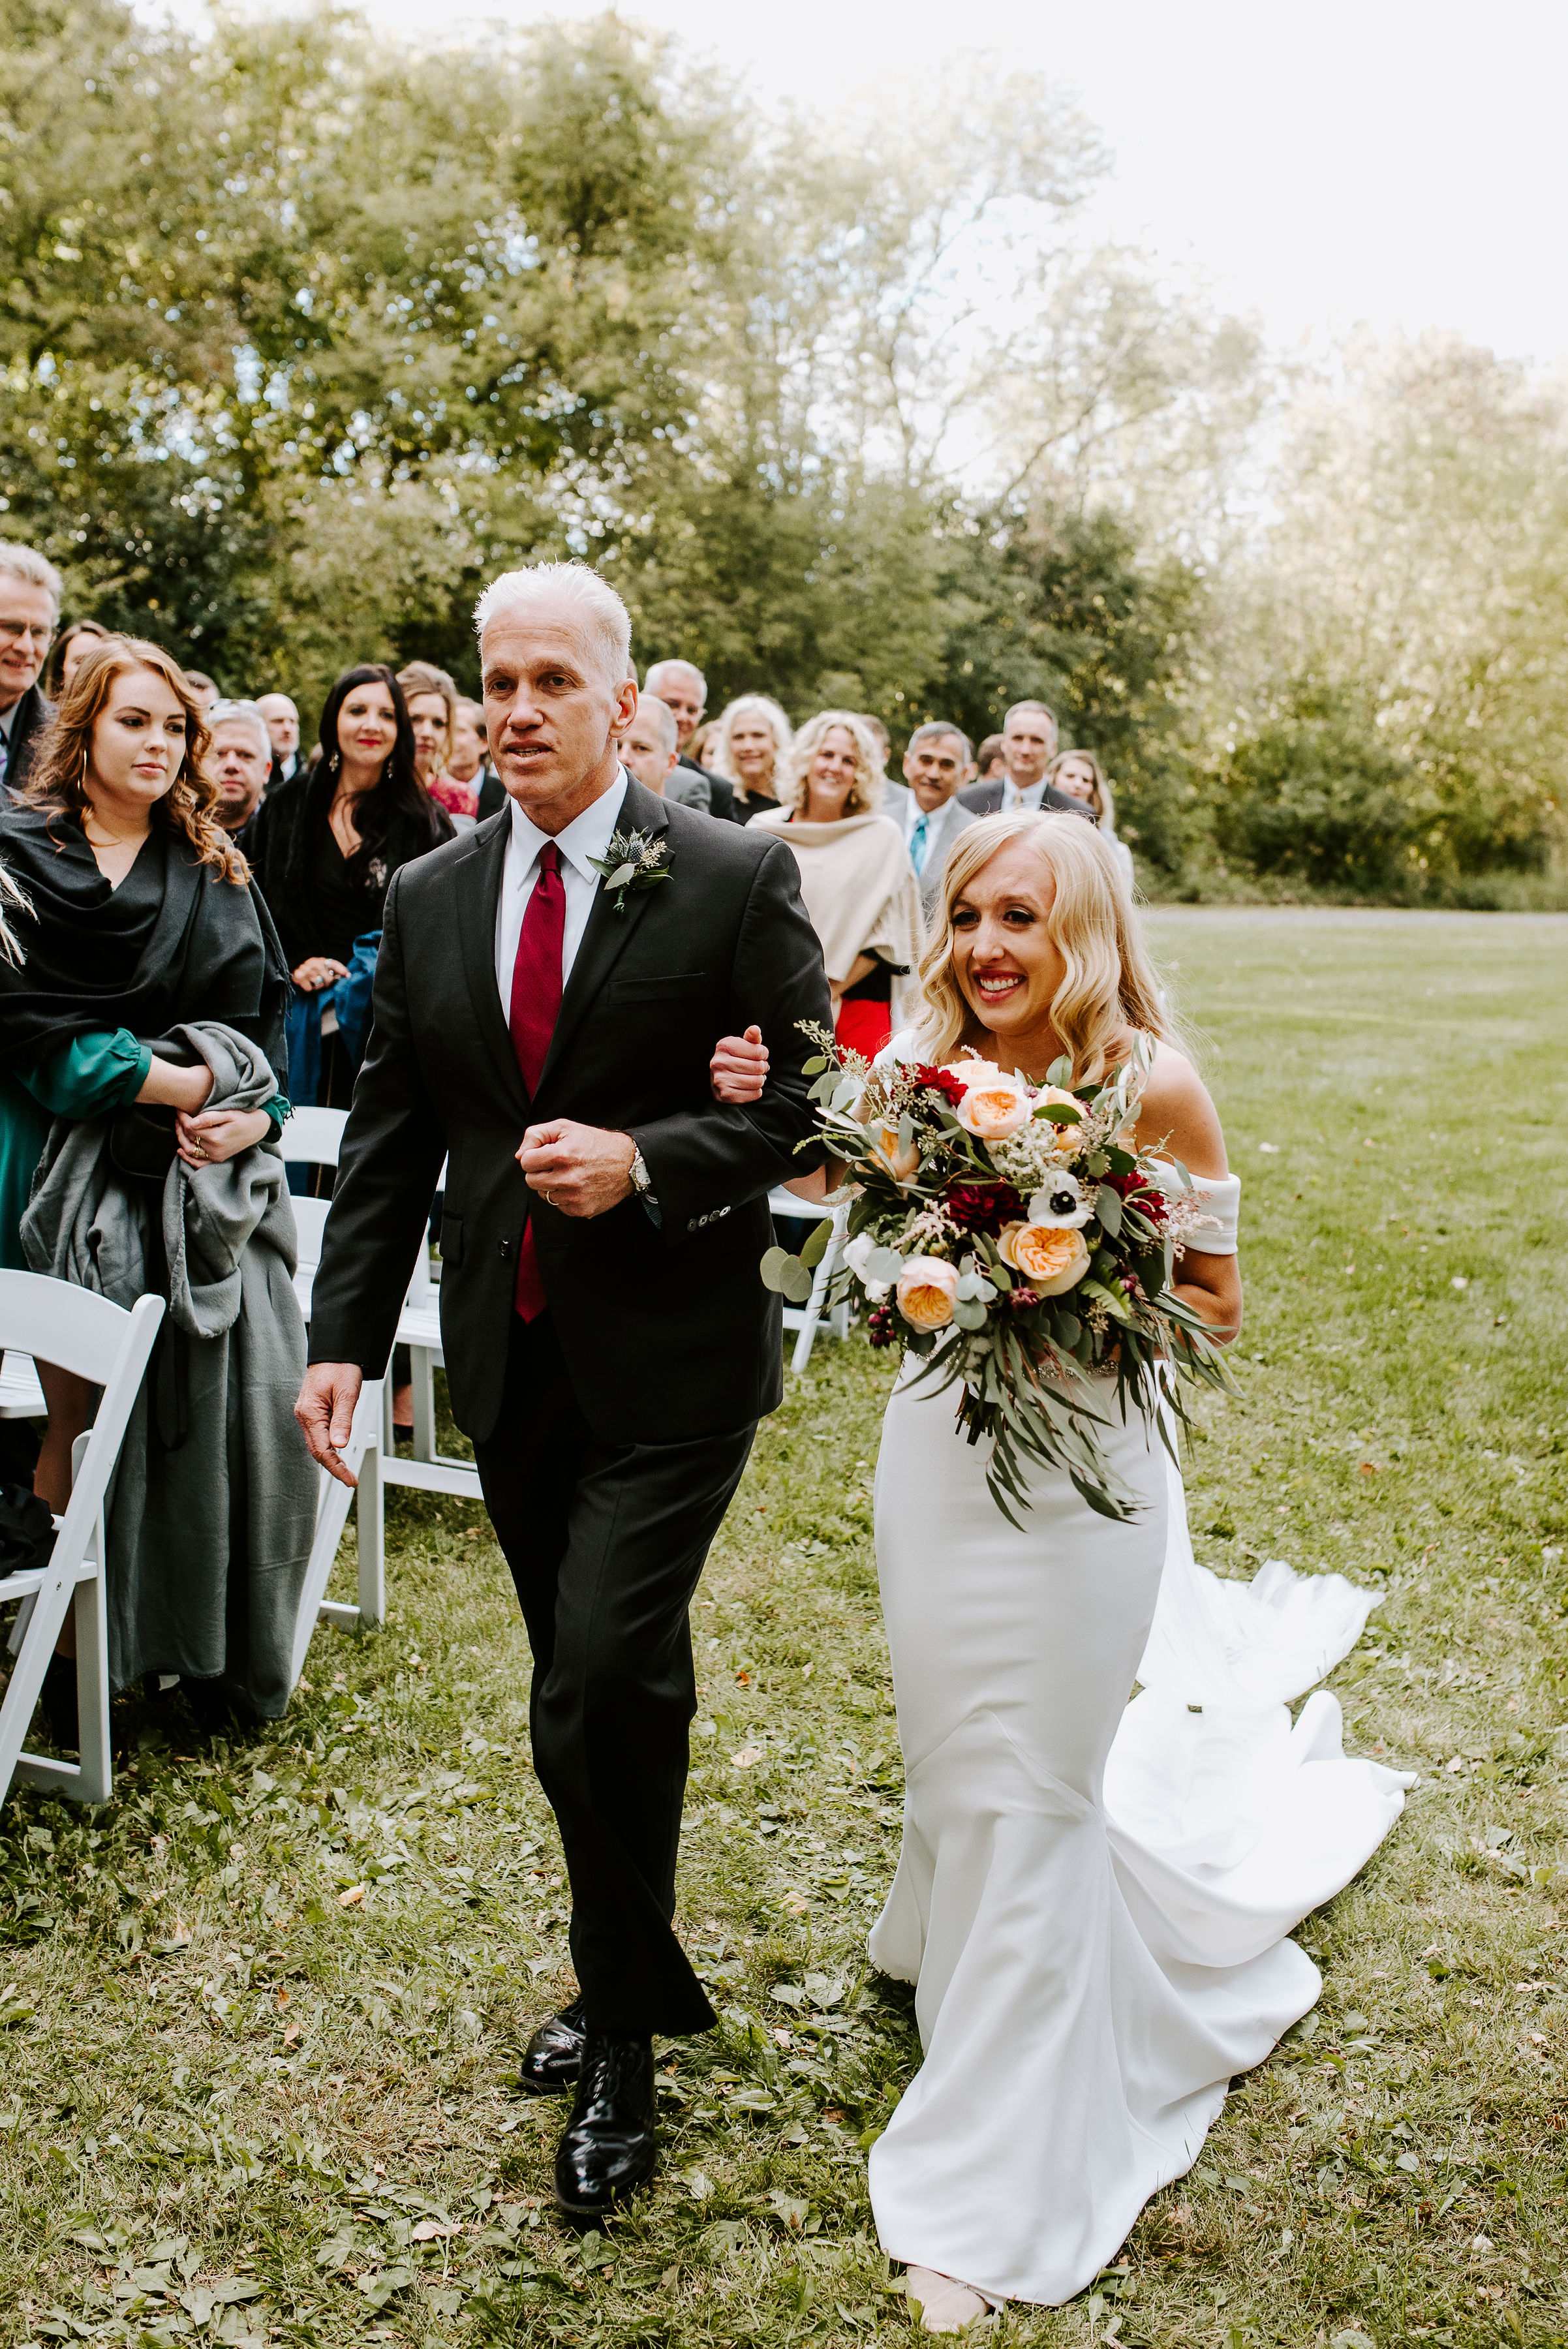 Winehaven-Winery-Wedding-Ceremony-Minneapolis-MN.jpg